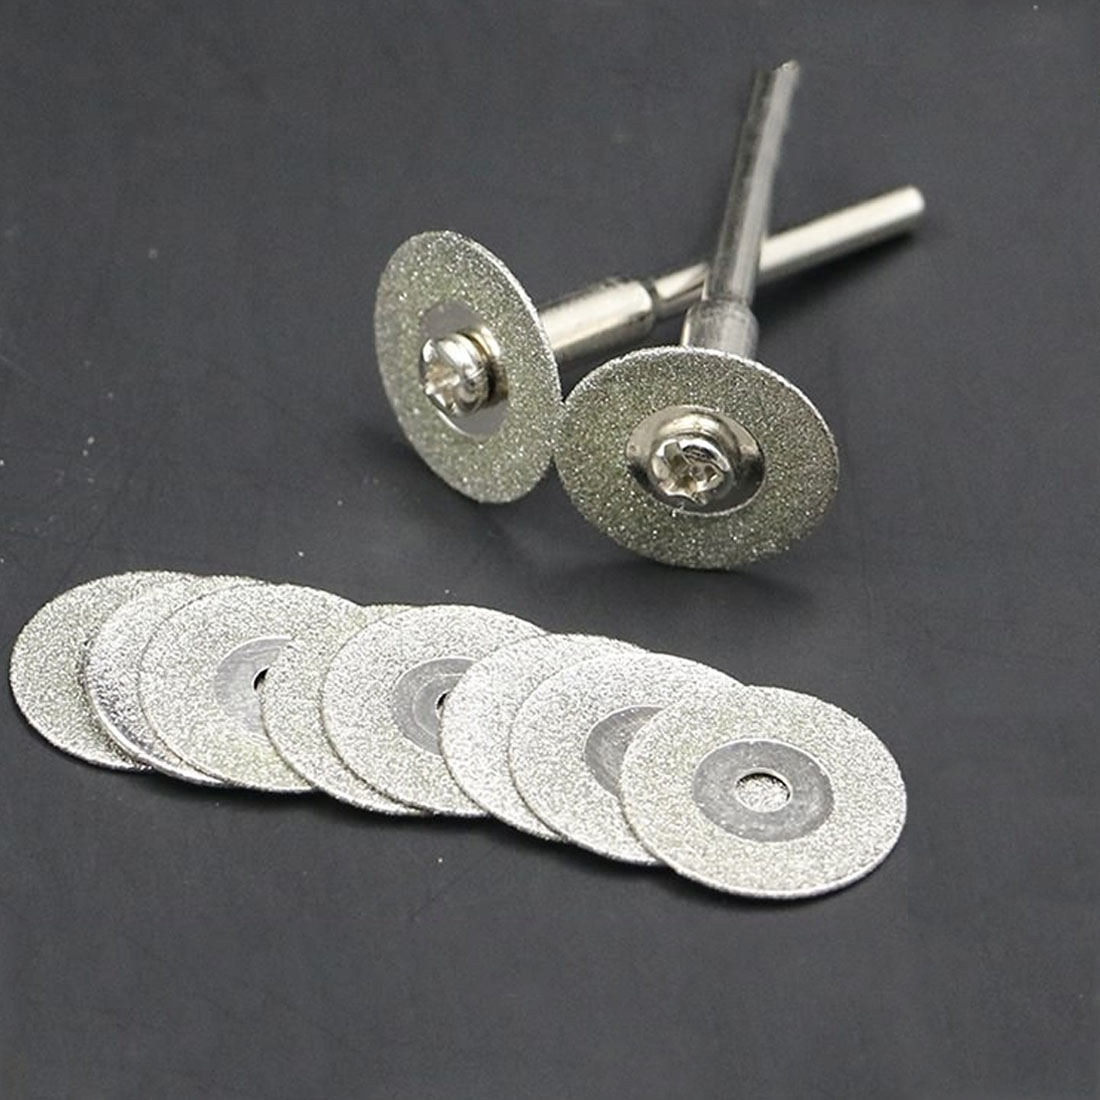 60mm Diamond Cutting Disc For Mini Drill Dremel Tools Diamond Disc Steel Rotary Tool Circular Saw Abrasive Saw Blade